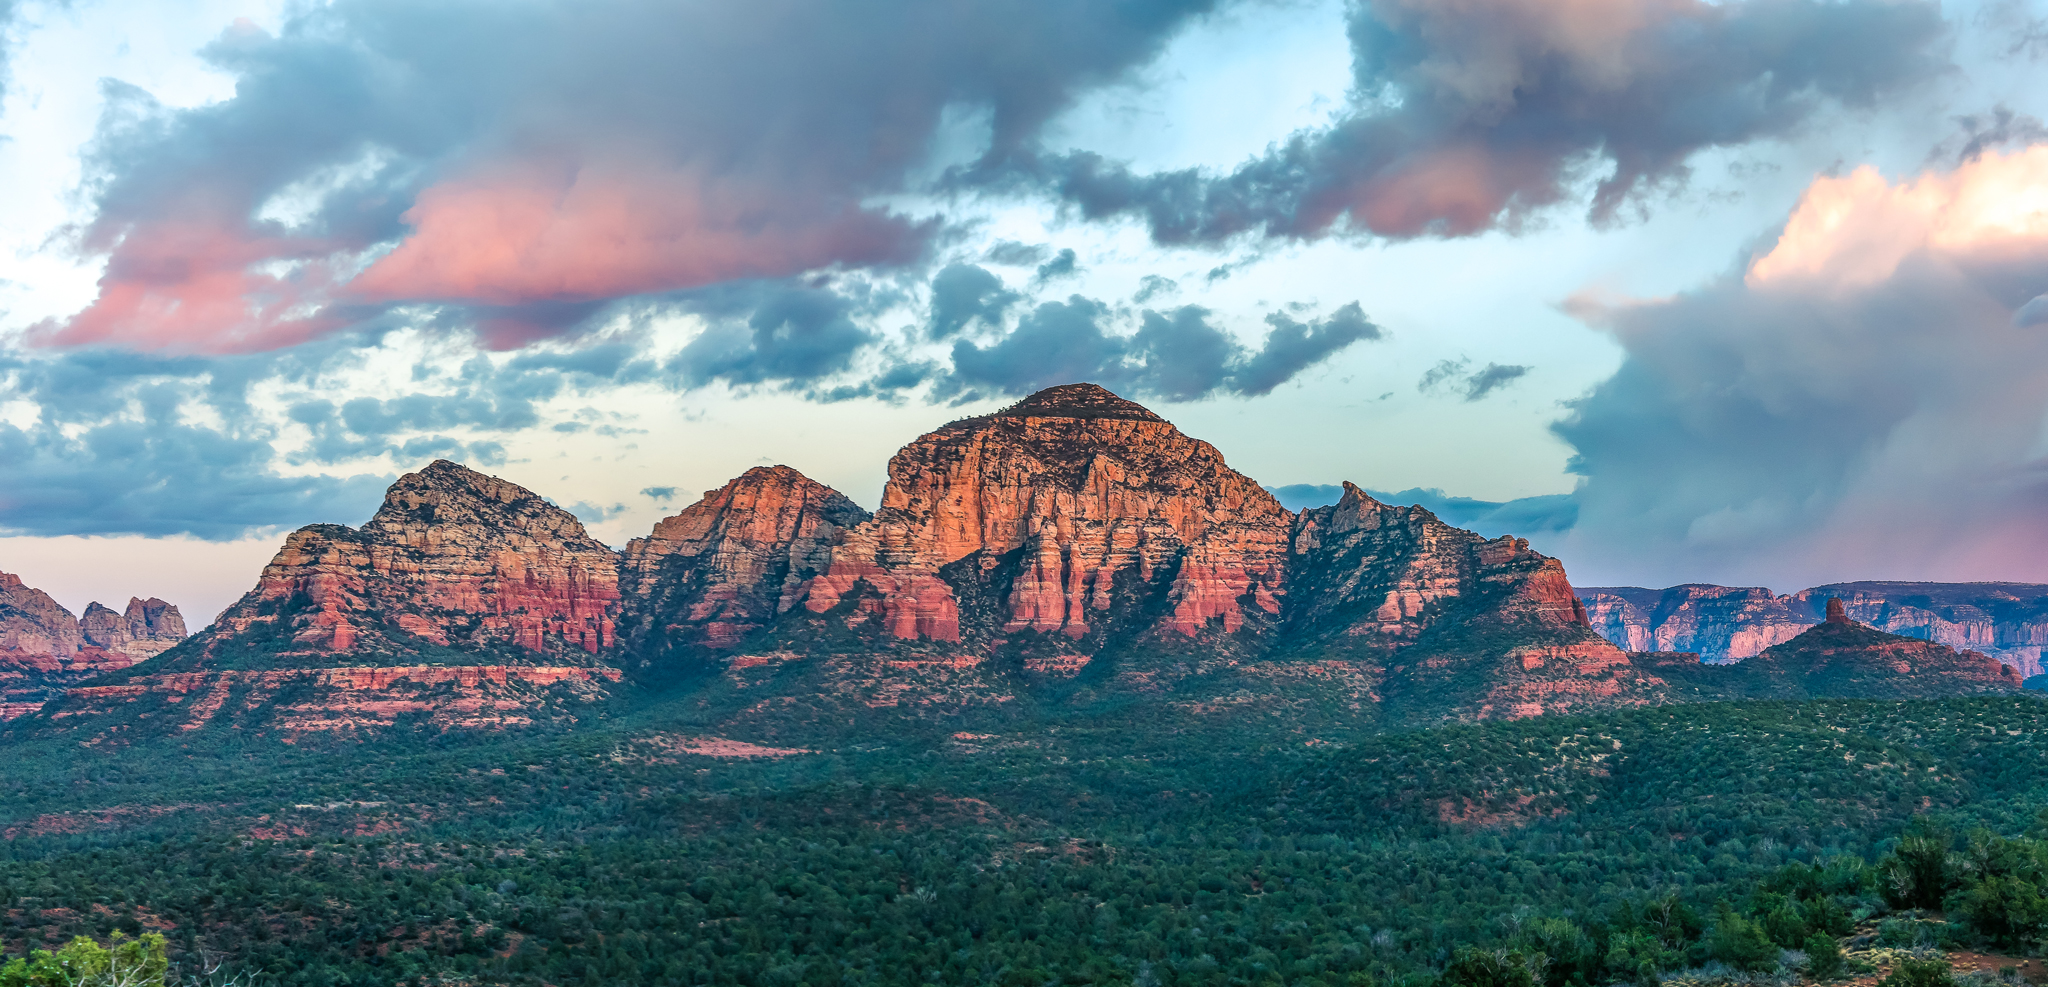 2014_Brandon-Tigrett_Scottsdale_Trip-to-Sedona-266-Edit_Retouched_WEB_Portfolio.jpg